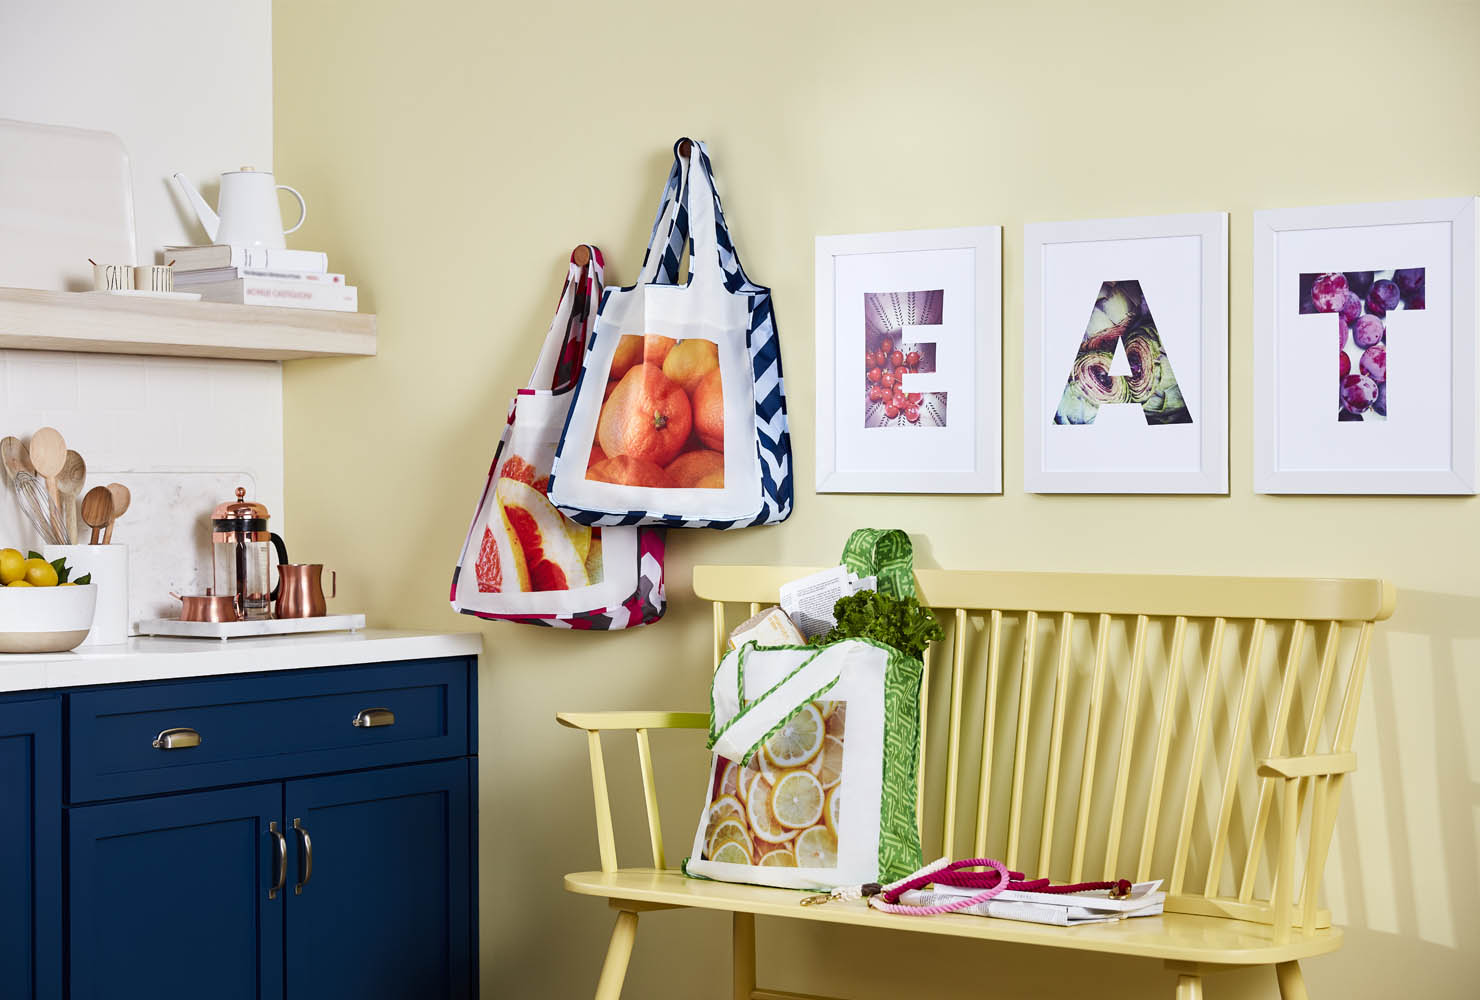 Canvas prints hanging over bench in kitchen.